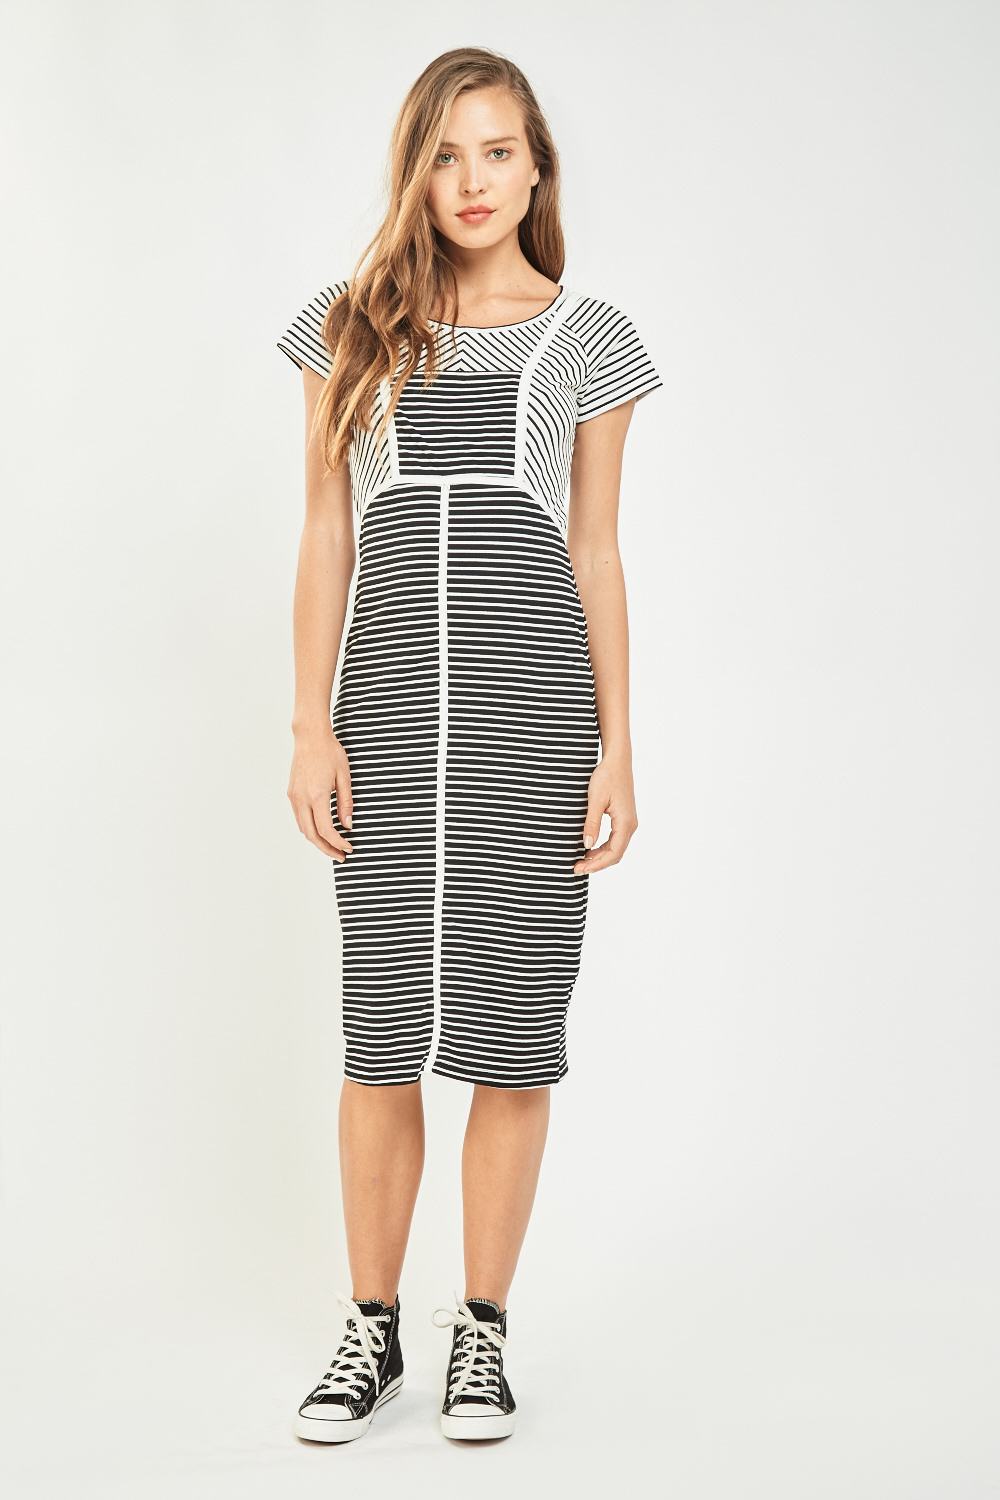 516cbbf5038 Casual Two Tone Striped Dress - Black or White - Just £5